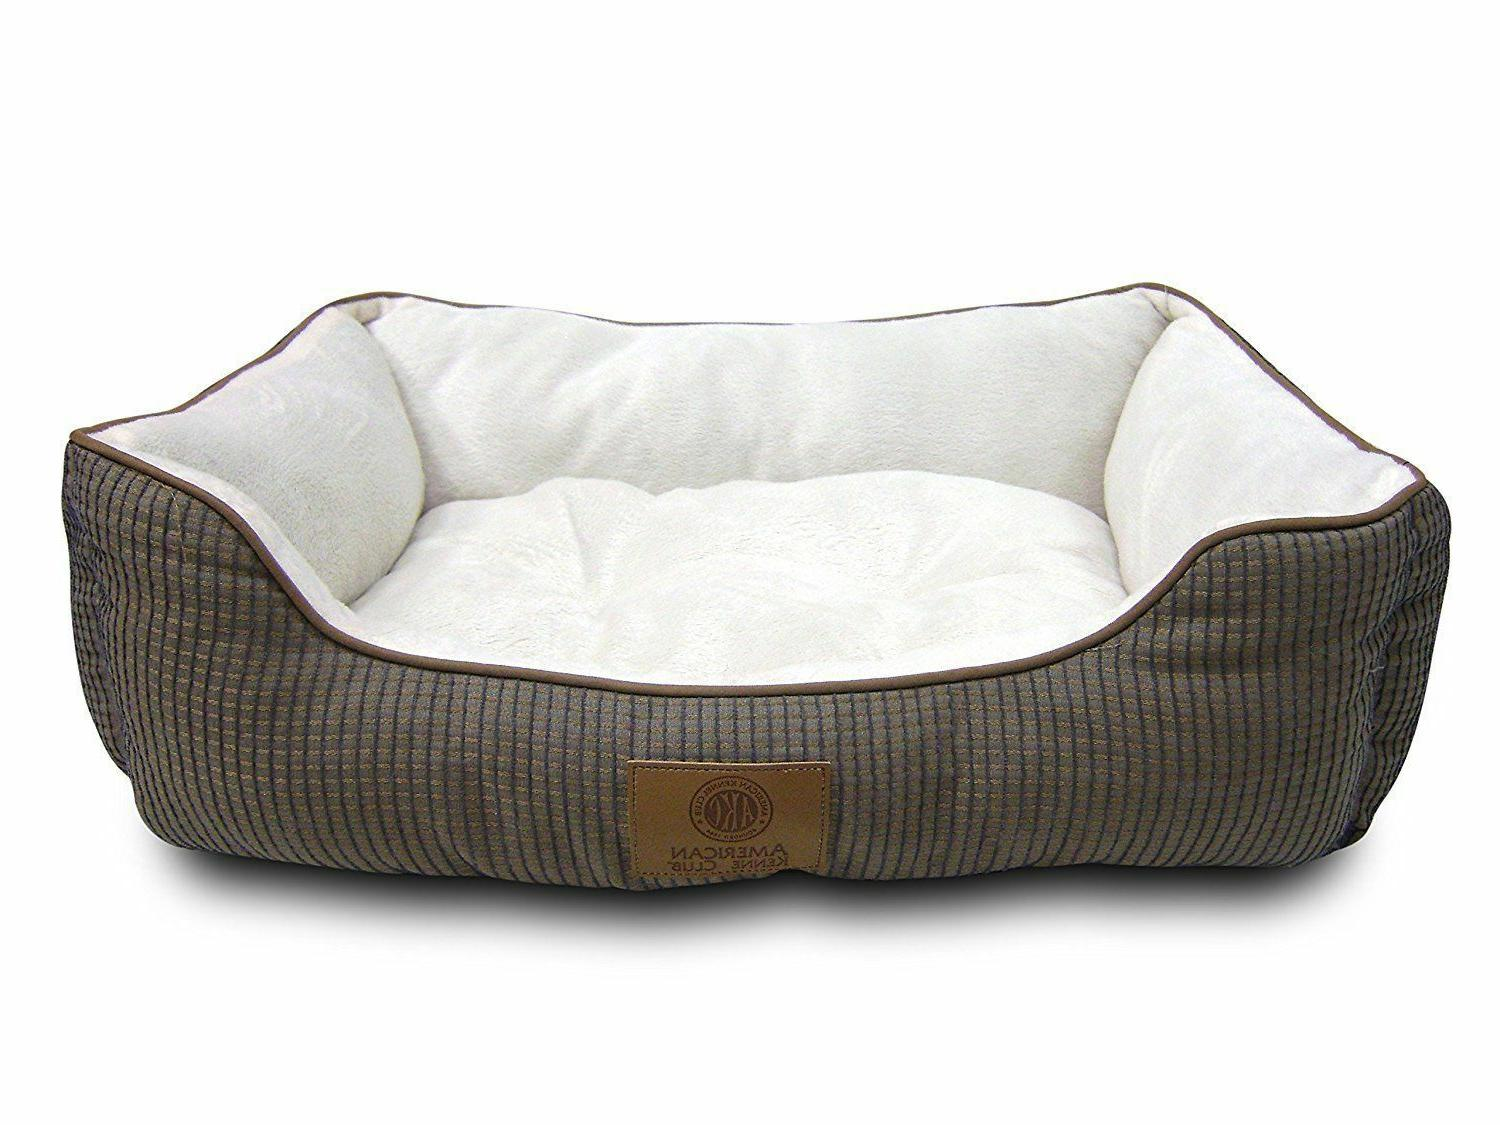 box weave design cuddler pet bed tan